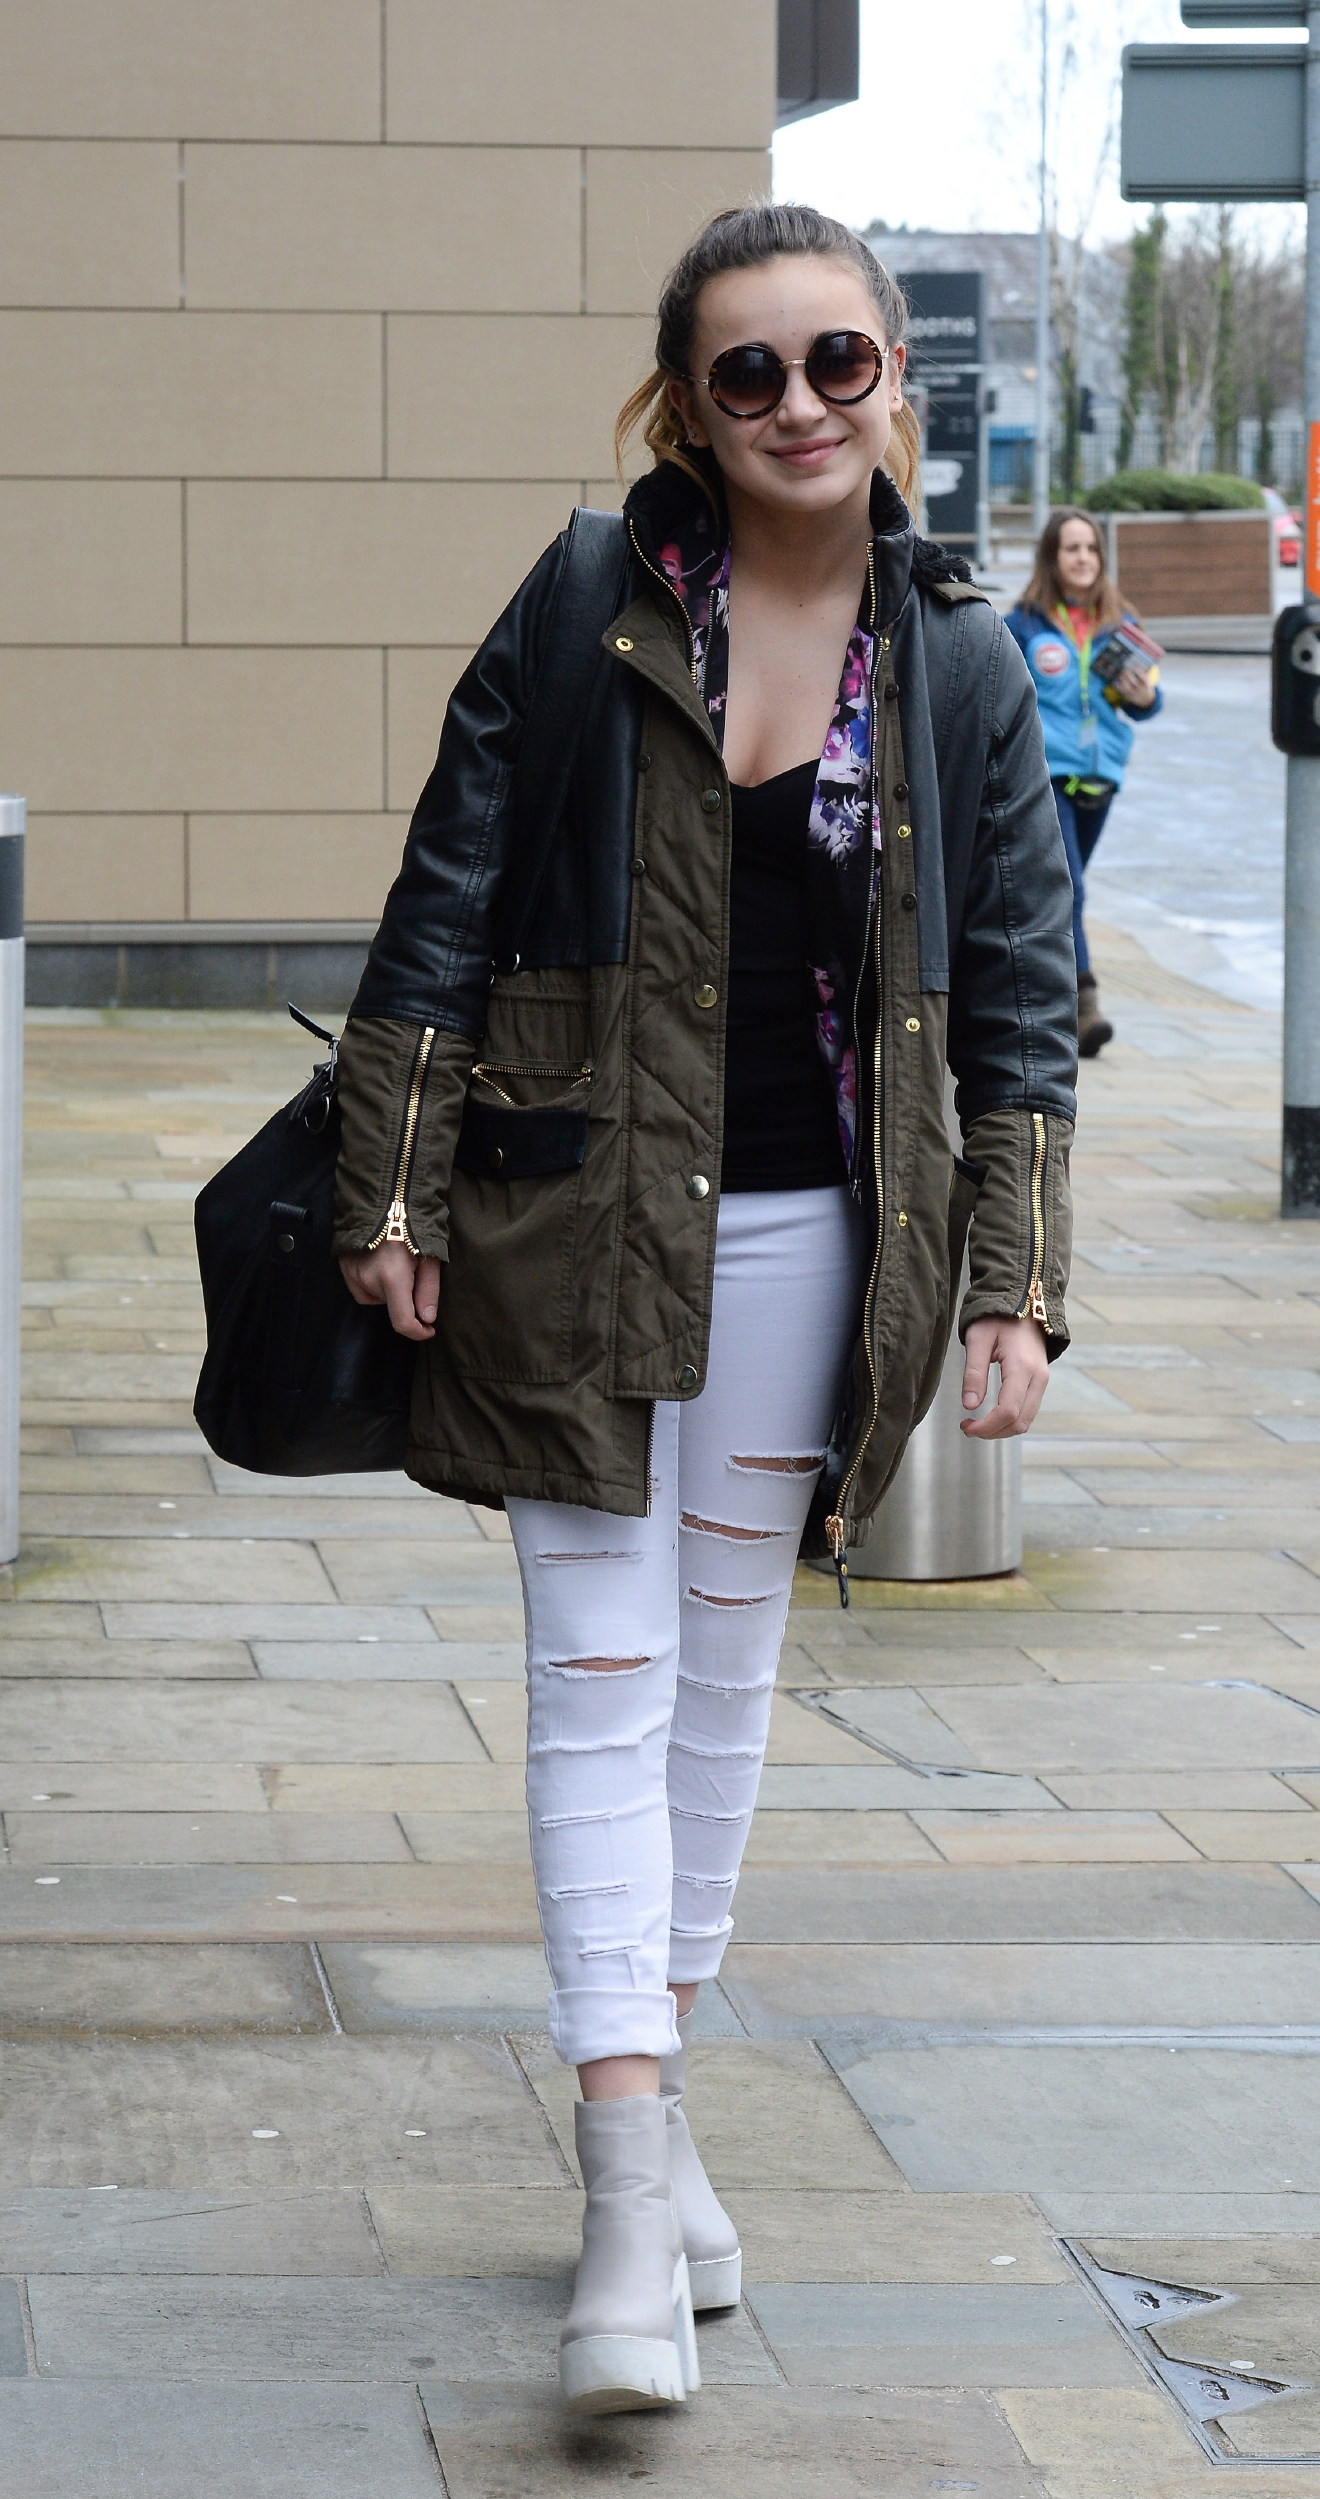 Lauren Platt seen arriving at the BBC Studios Media City, Manchester to present CBBC kids talent show Got What It Takes?  Featuring: Lauren Platt Where: Manchester, United Kingdom When: 05 Mar 2016 Credit: Steve Searle/WENN.com